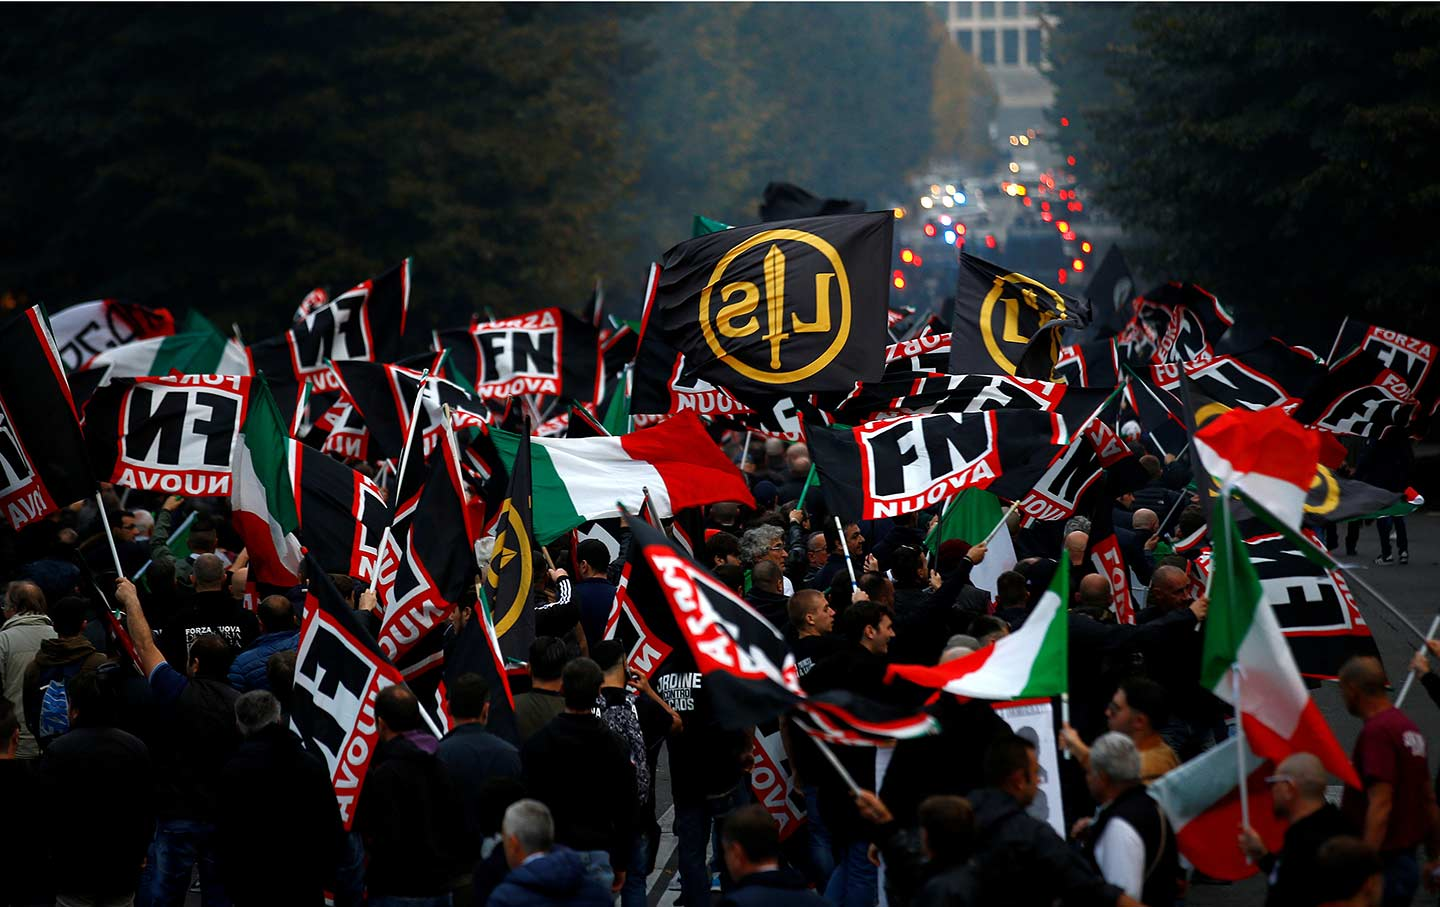 'Shoot the Beasts on Sight': The Far Right and Italy's Elections